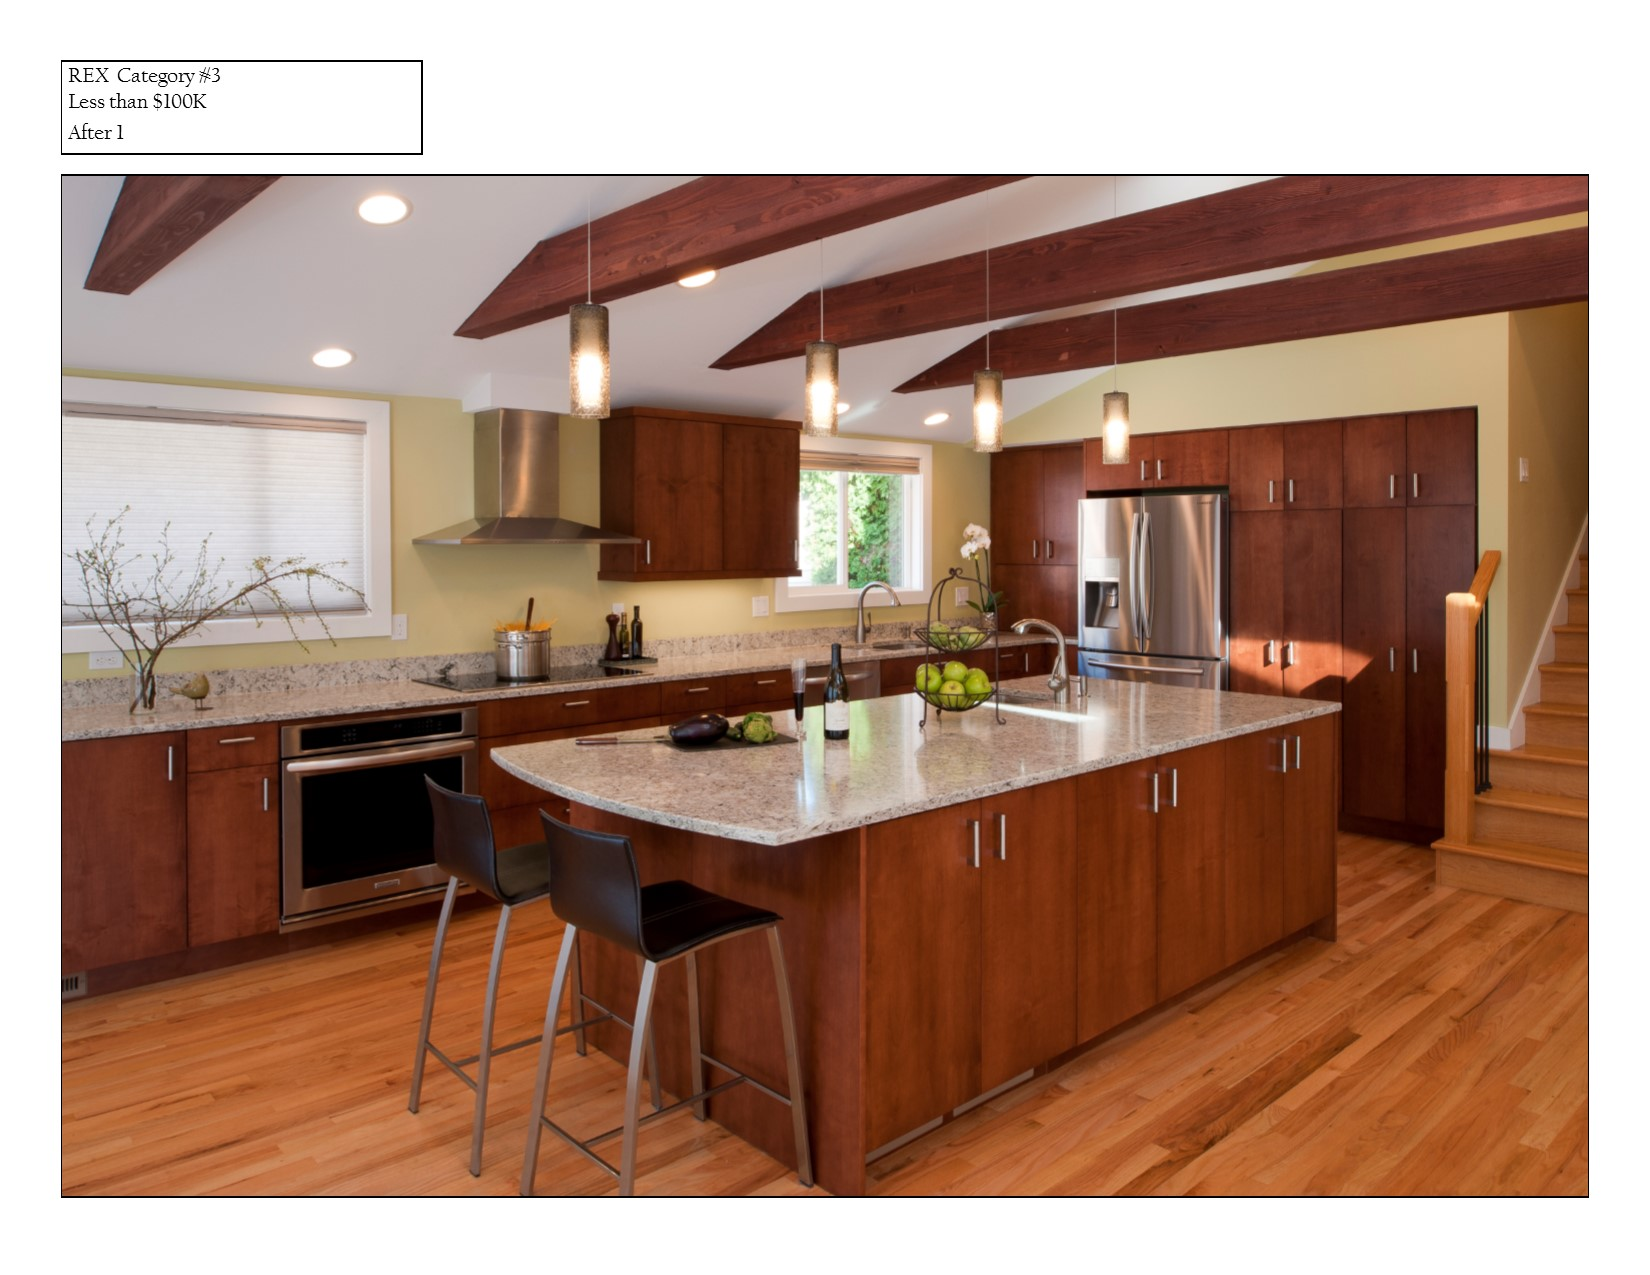 Remodel Kitchen Open Floor Plan In Mcdonough Ga